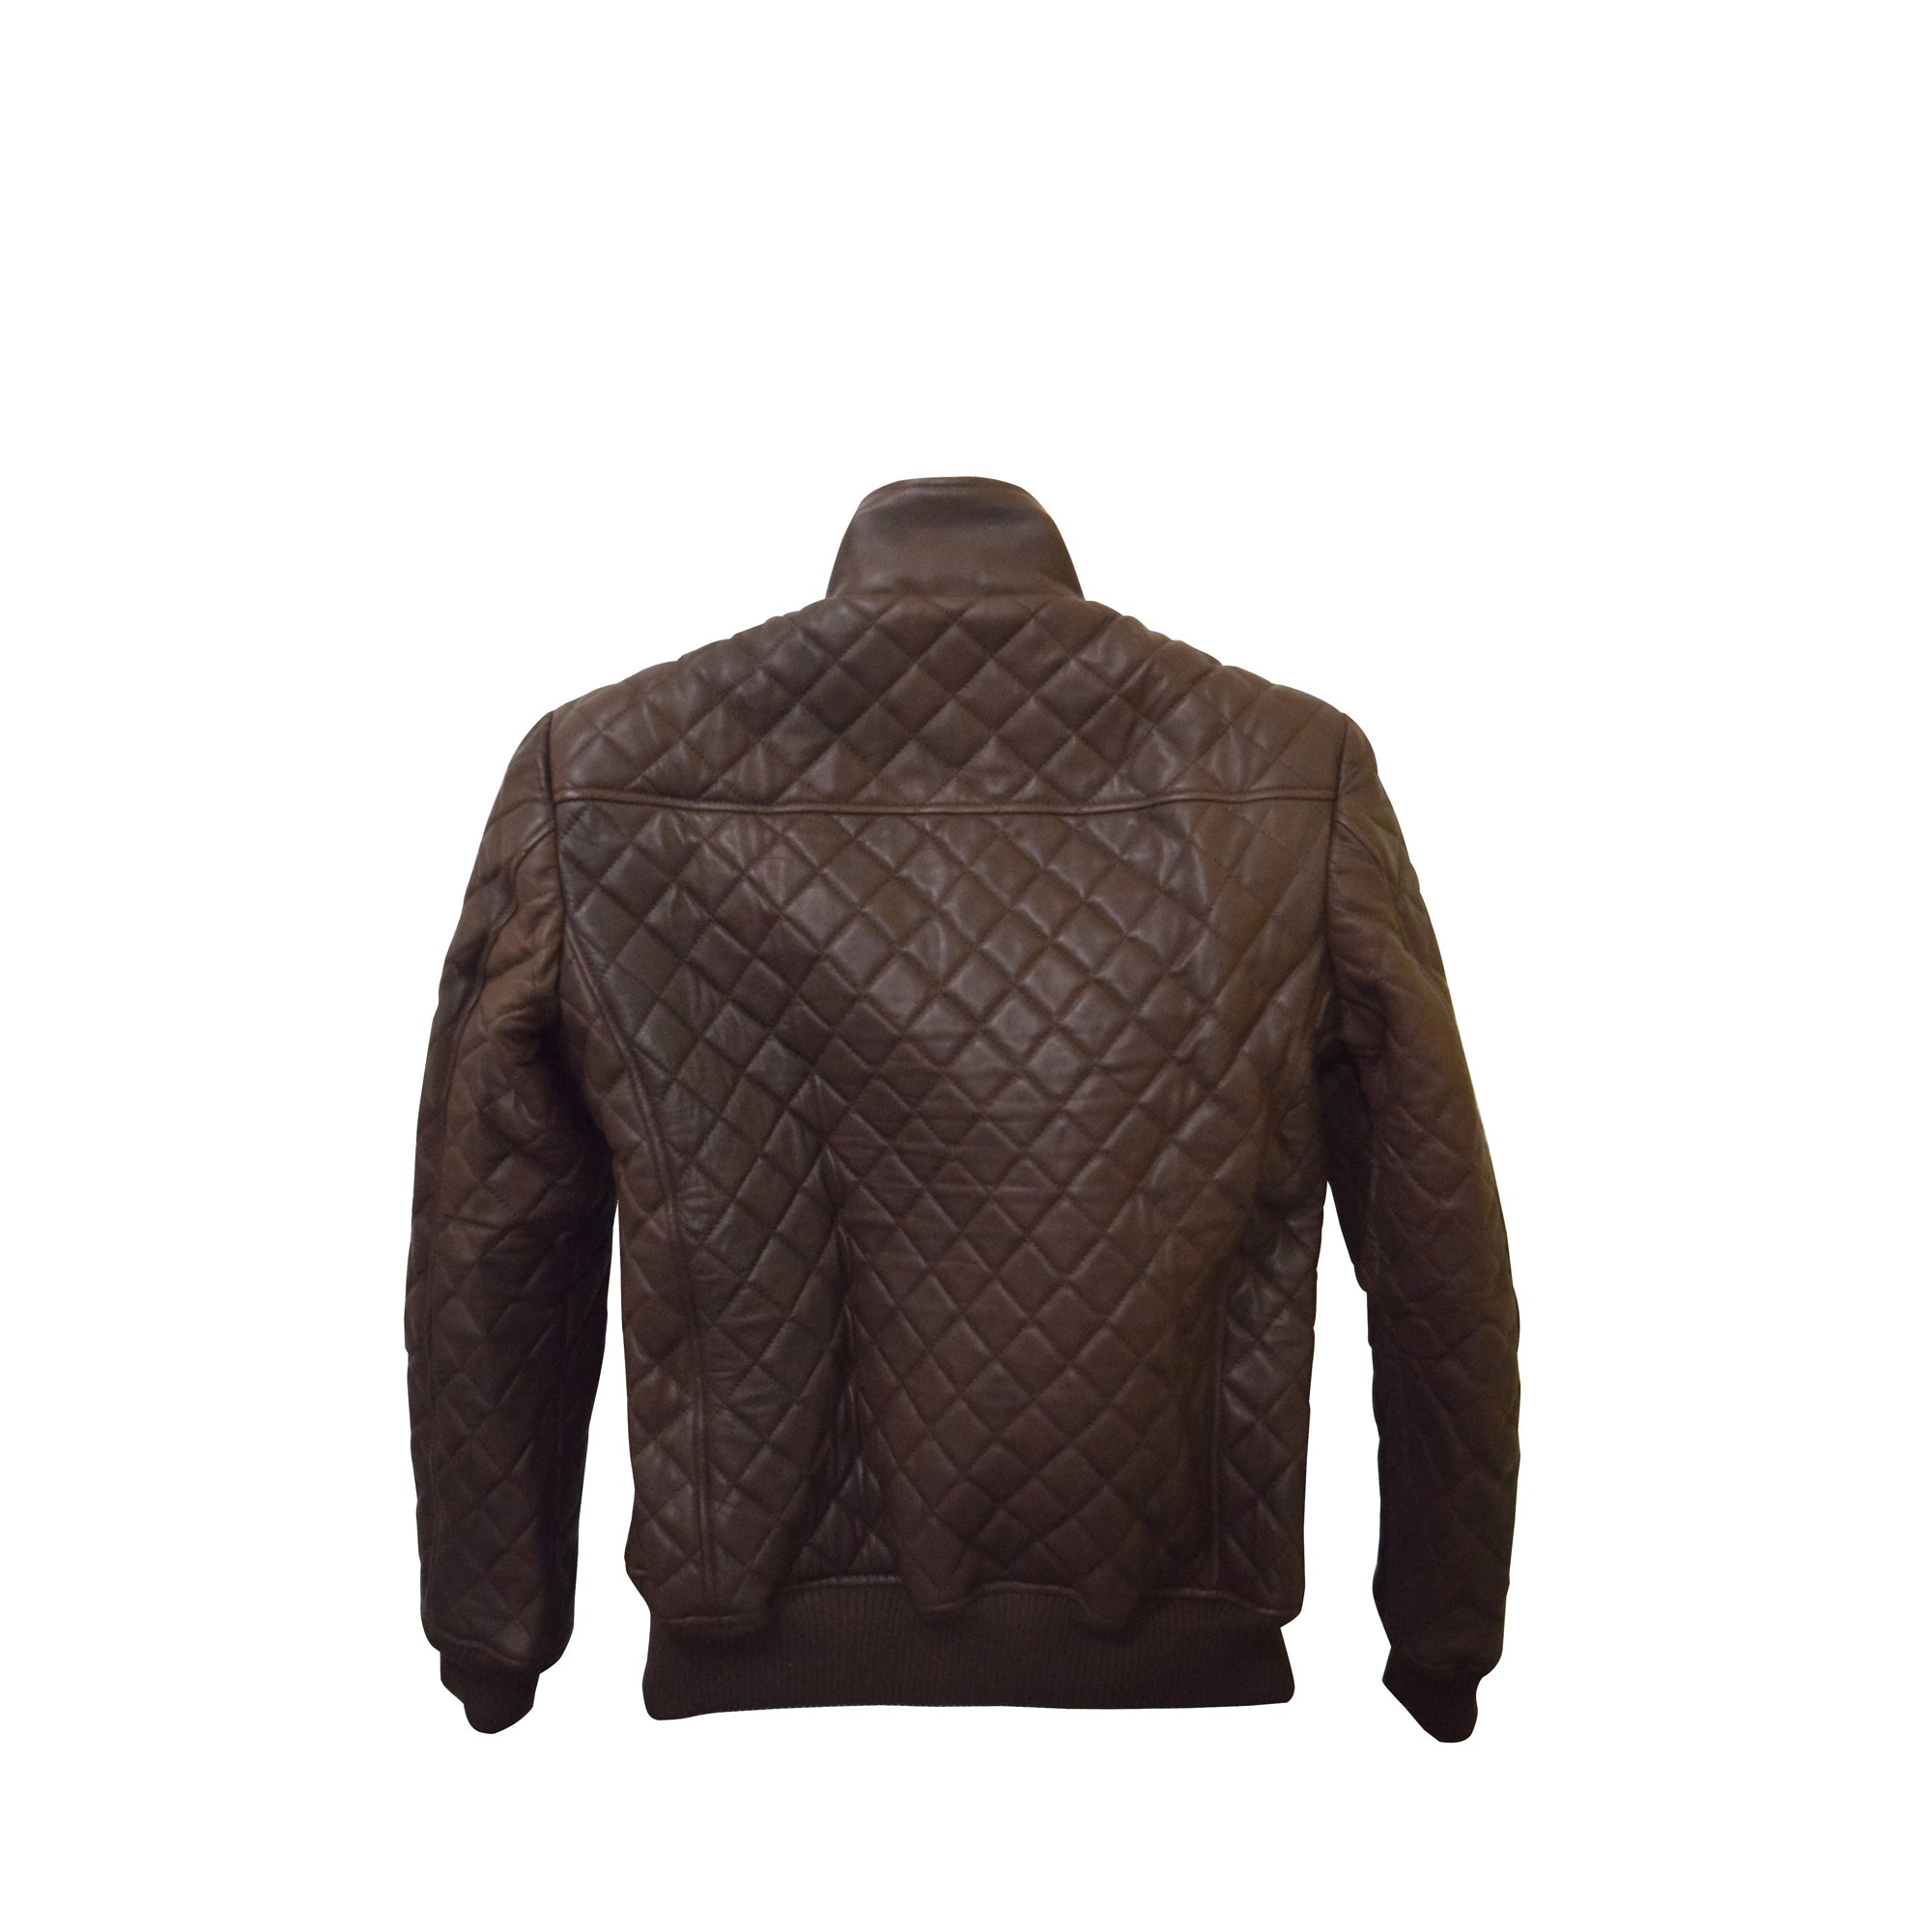 Edmund's Brown Checkered Jacket